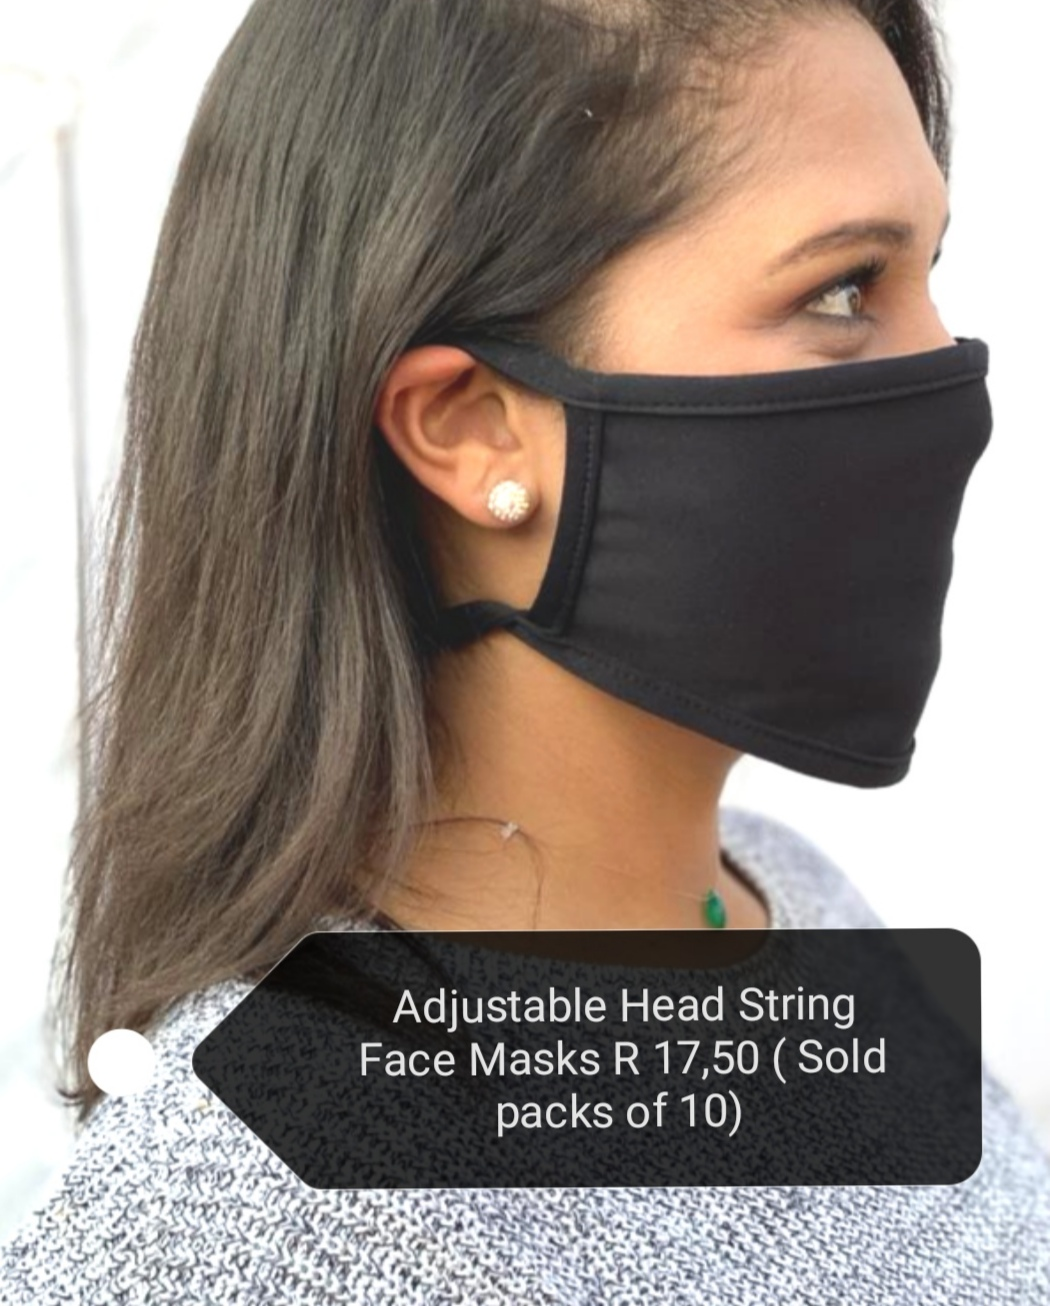 Spunbound Handmade Face Masks  Face Shields, Cloth Masks 100 000 on hand